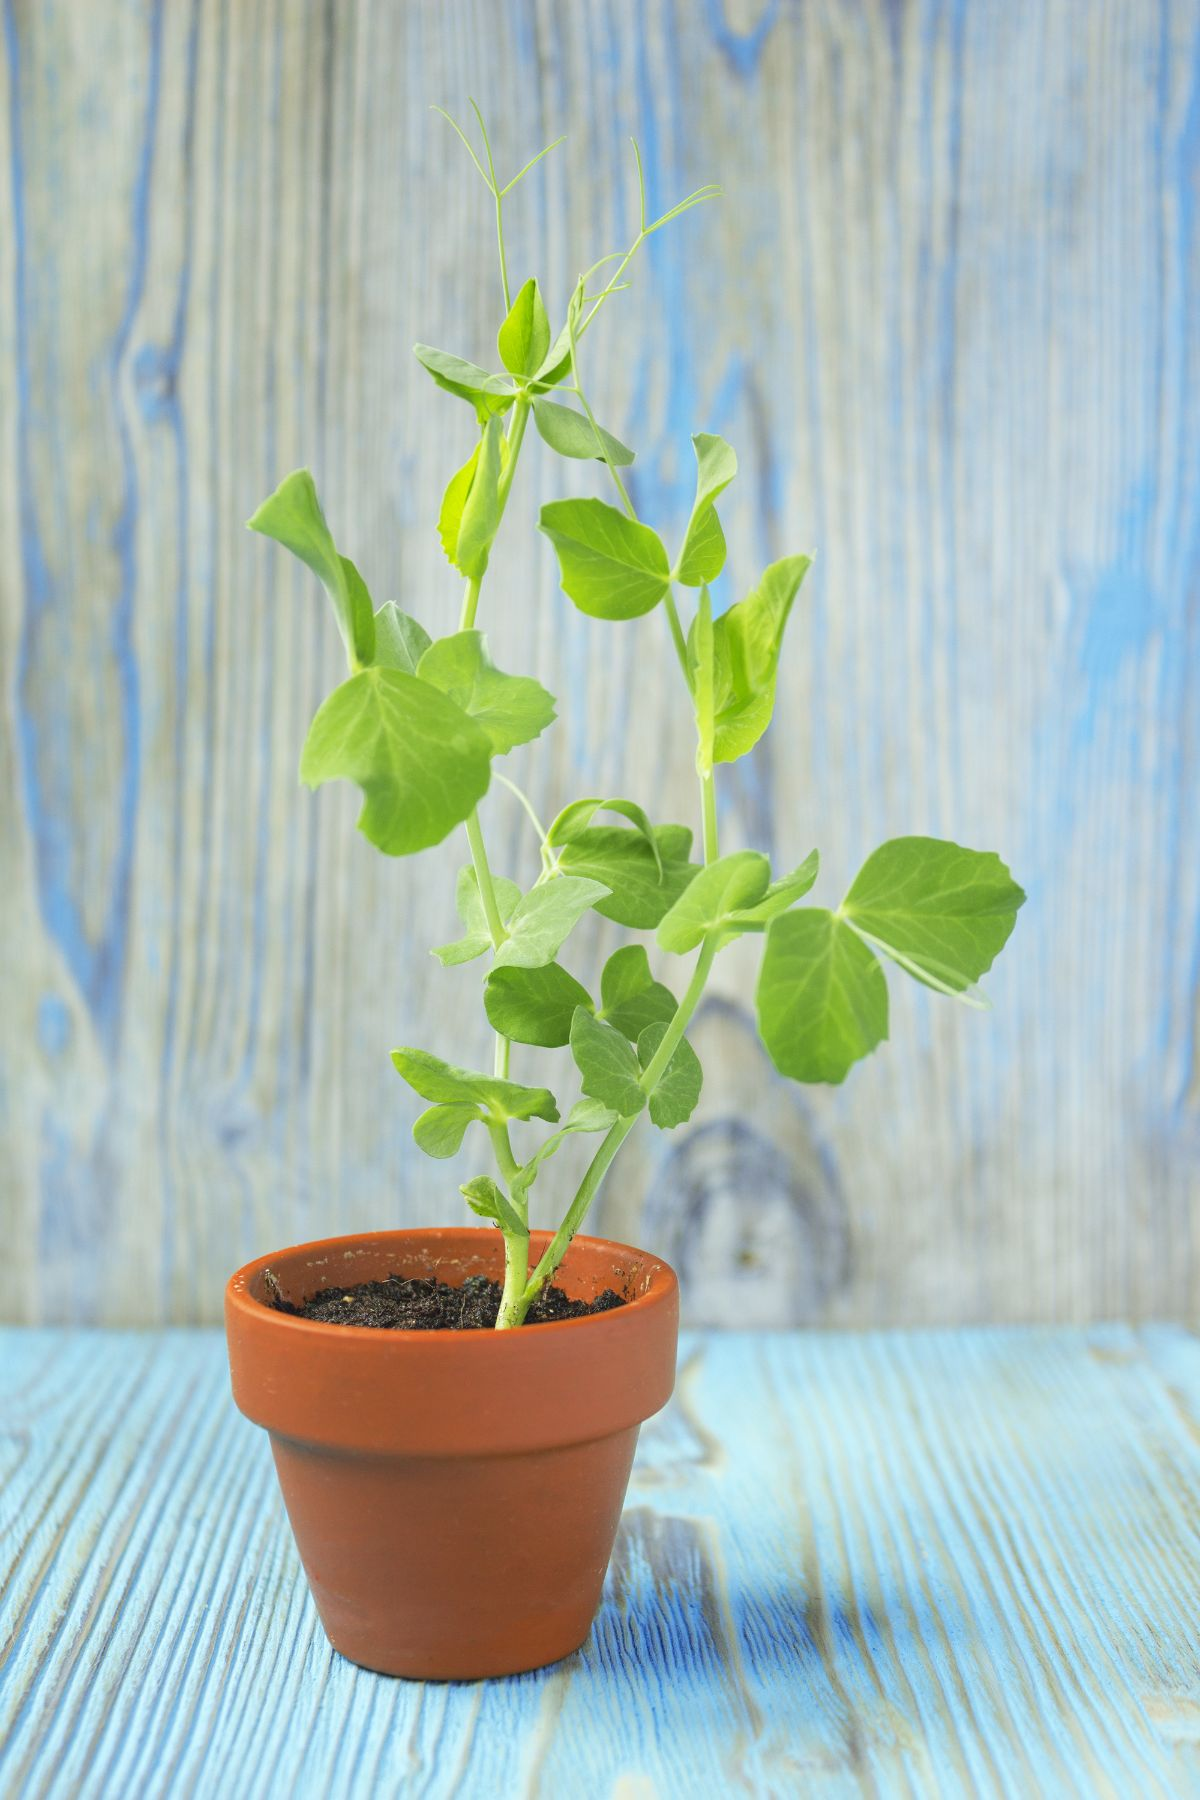 young plant of pea in a ceramic pot